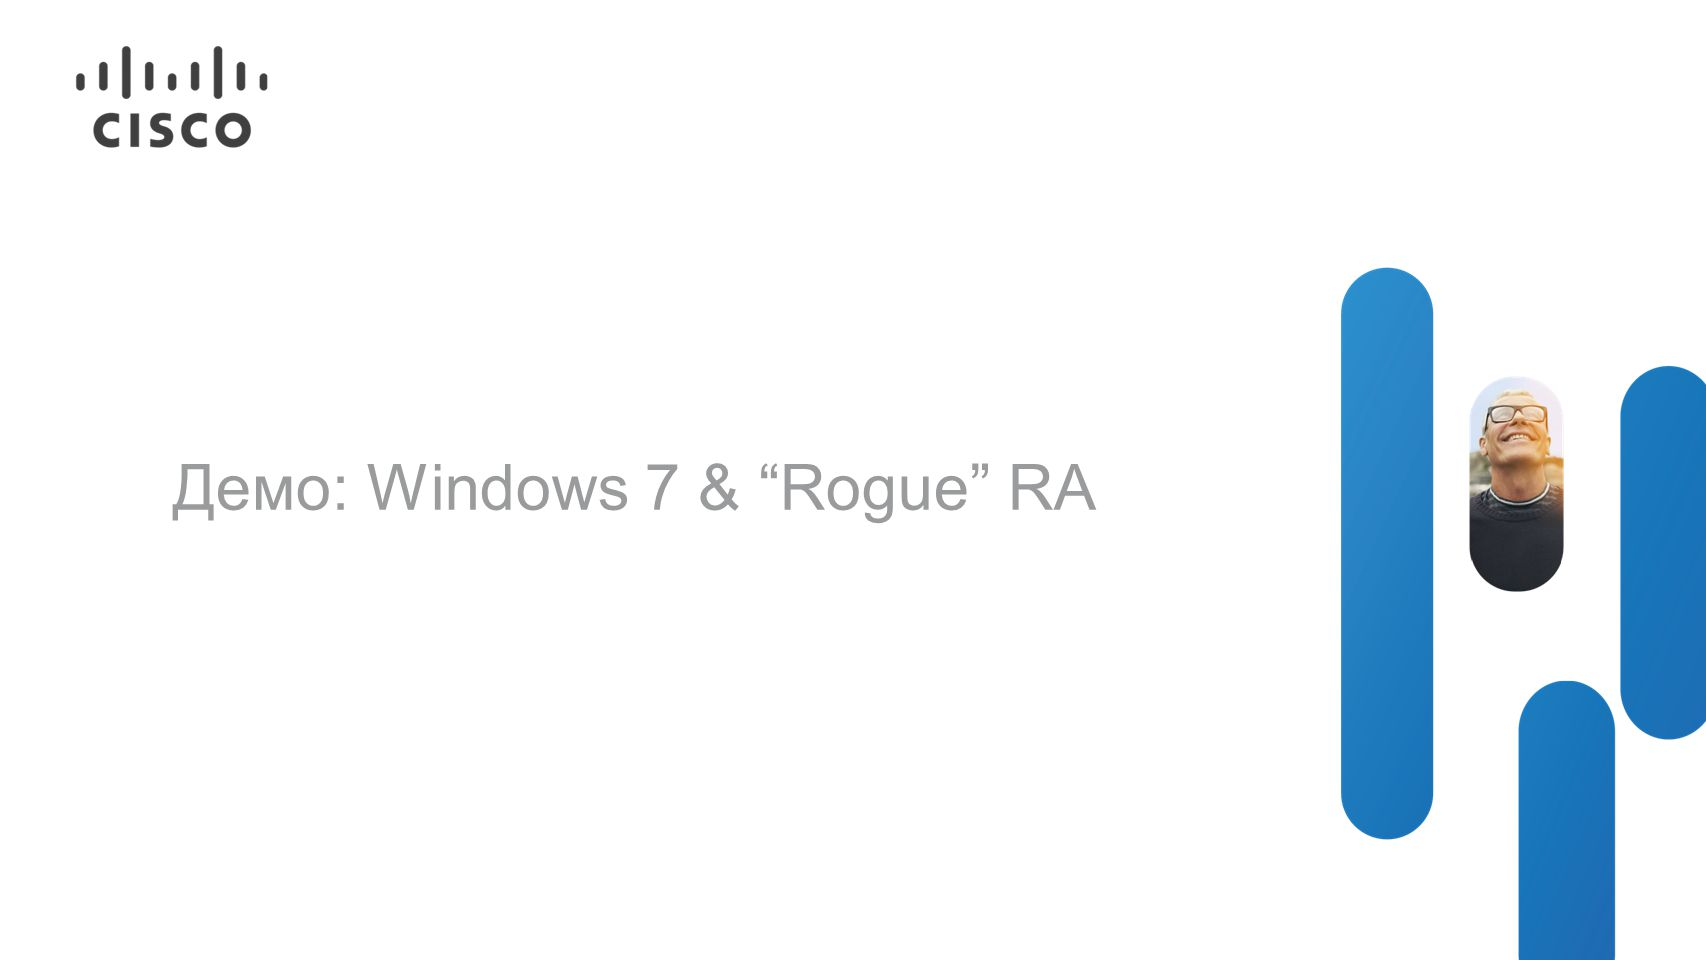 Демо: Windows 7 & Rogue RA